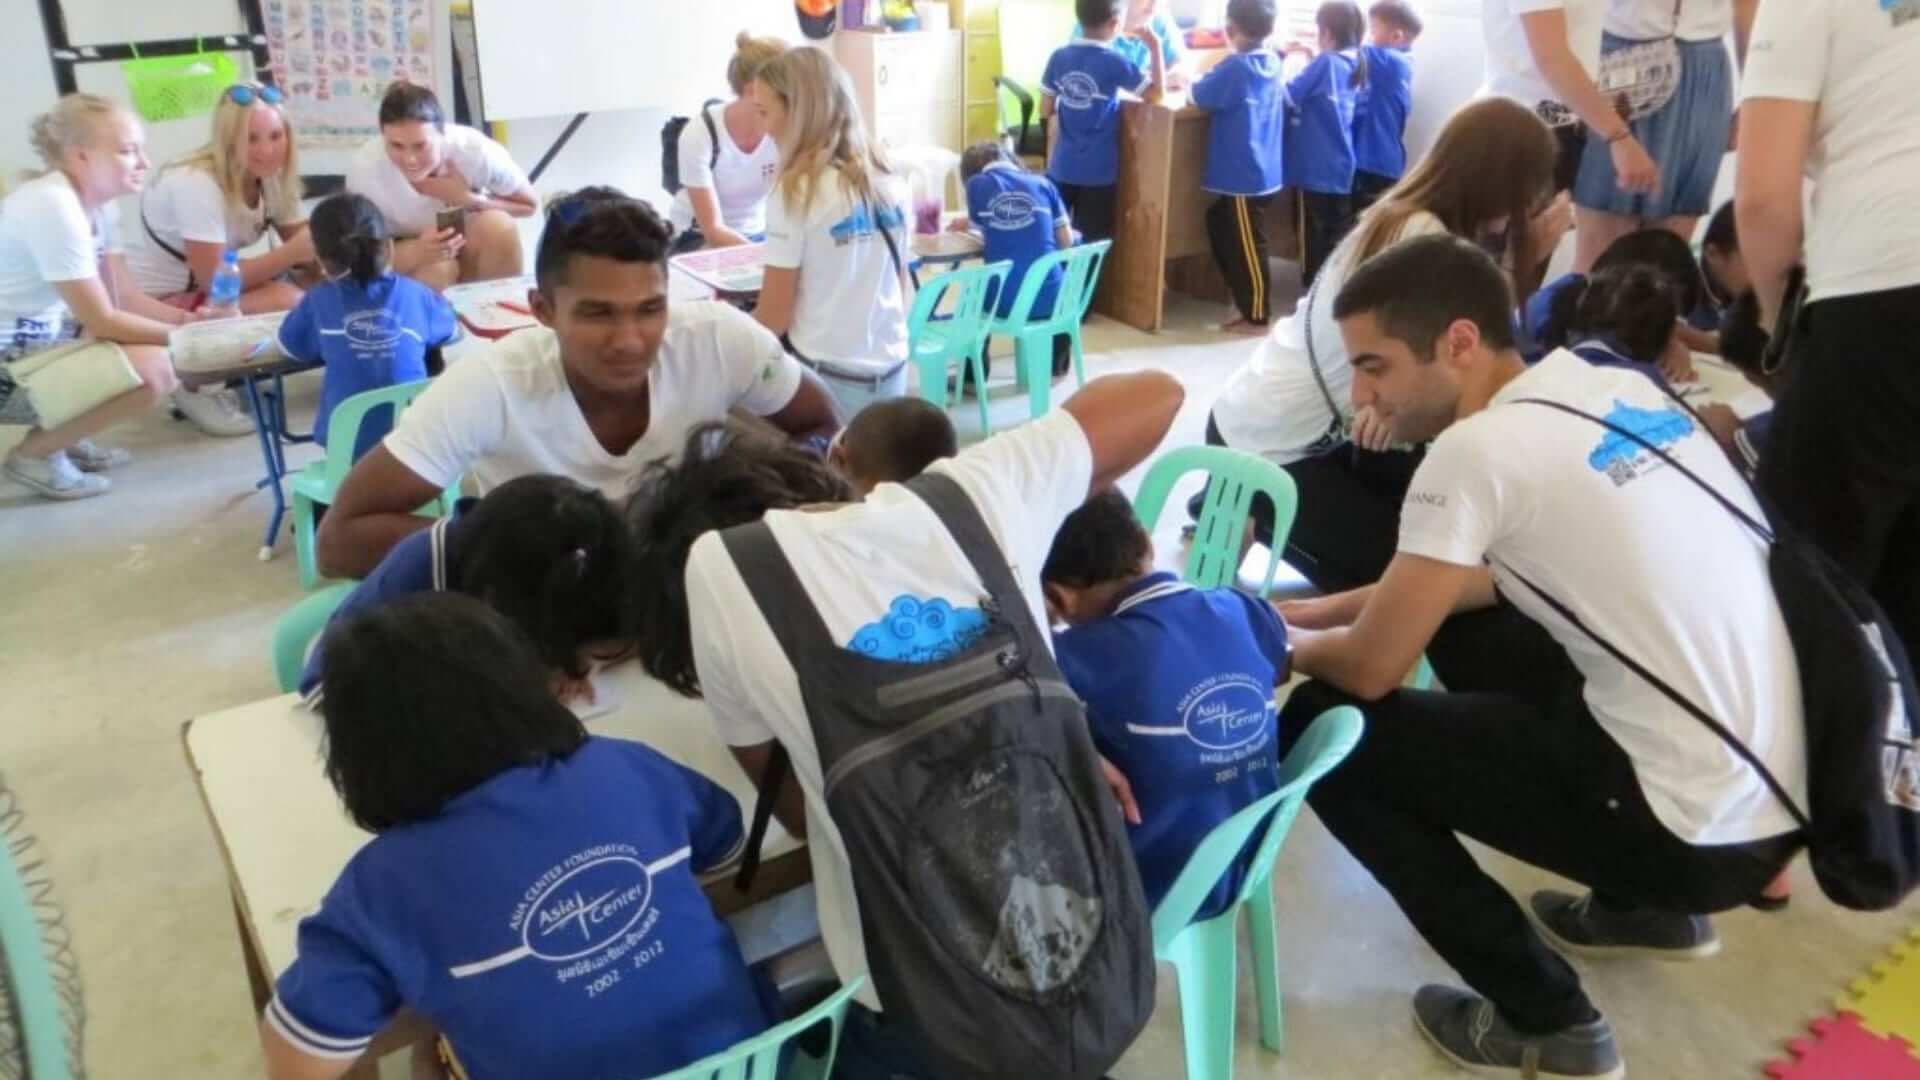 Exchange students are talking and working together with children in Thailand.